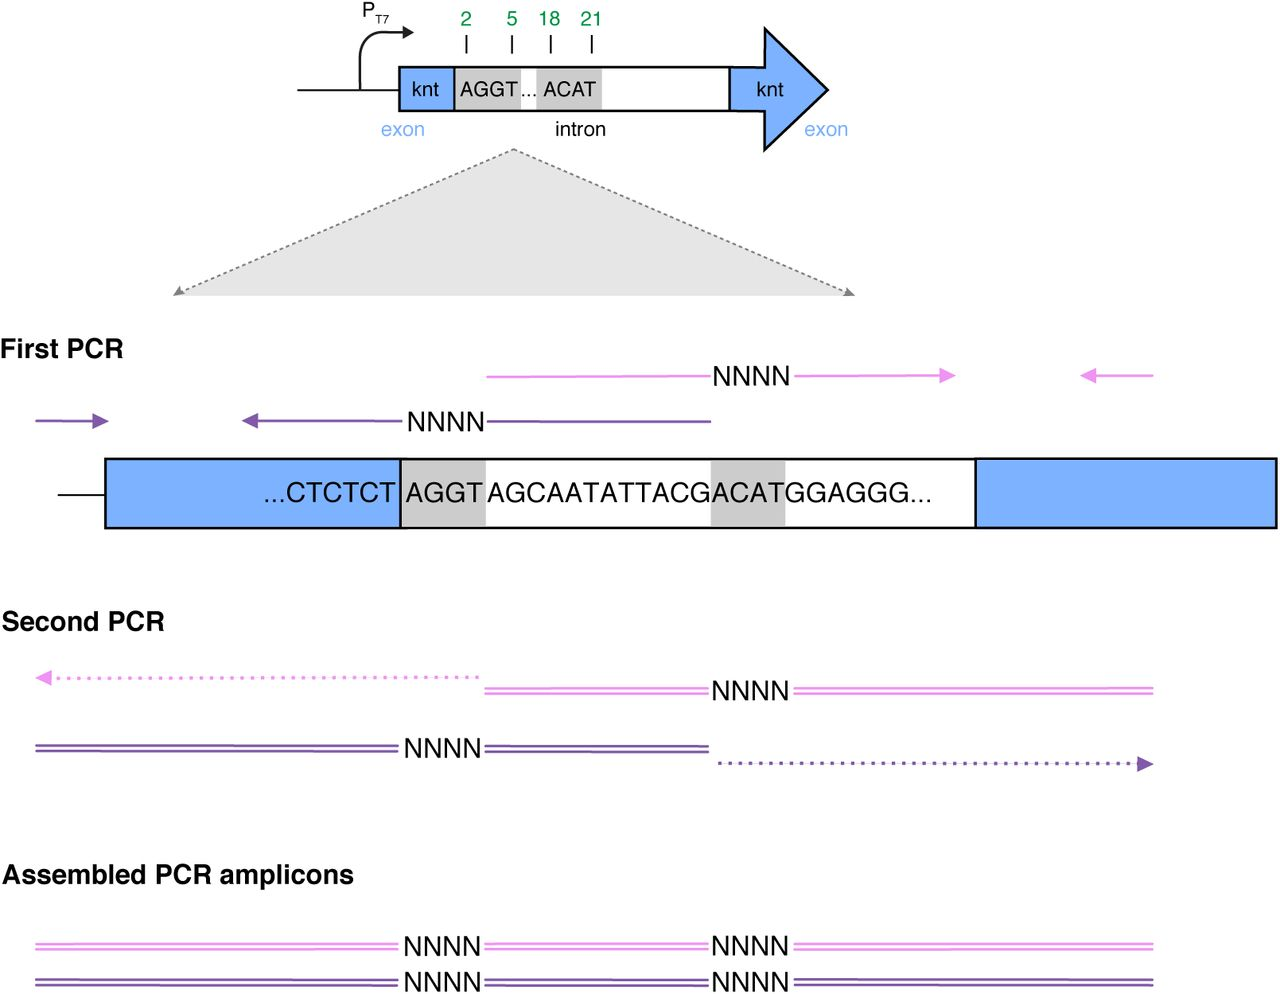 Generation of mutant library using site-saturation mutagenesis via a two-step PCR. Solid arrows denote oligonucleotides. In the first step, two pairs of oligonucleotides containing mixed bases ( https://www.idtdna.com/pages/products/custom-dna-rna/mixed-bases ) are used to amplify two separate fragments (purple and pink) containing one P1ex sub-region each. The 3' end of the purple fragment and the 5' end of the pink fragment share a 12-bp overlapping region, which allow self-annealing and subsequent 3' extension during the second PCR. As a result, the assembled amplicons contain two varying sub-regions. The purple fragment is amplified using primers Frag1-f and Frag1-r, whereas the pink fragment is amplified using primers Frag2-f and Frag2-r ( Table S3 ).